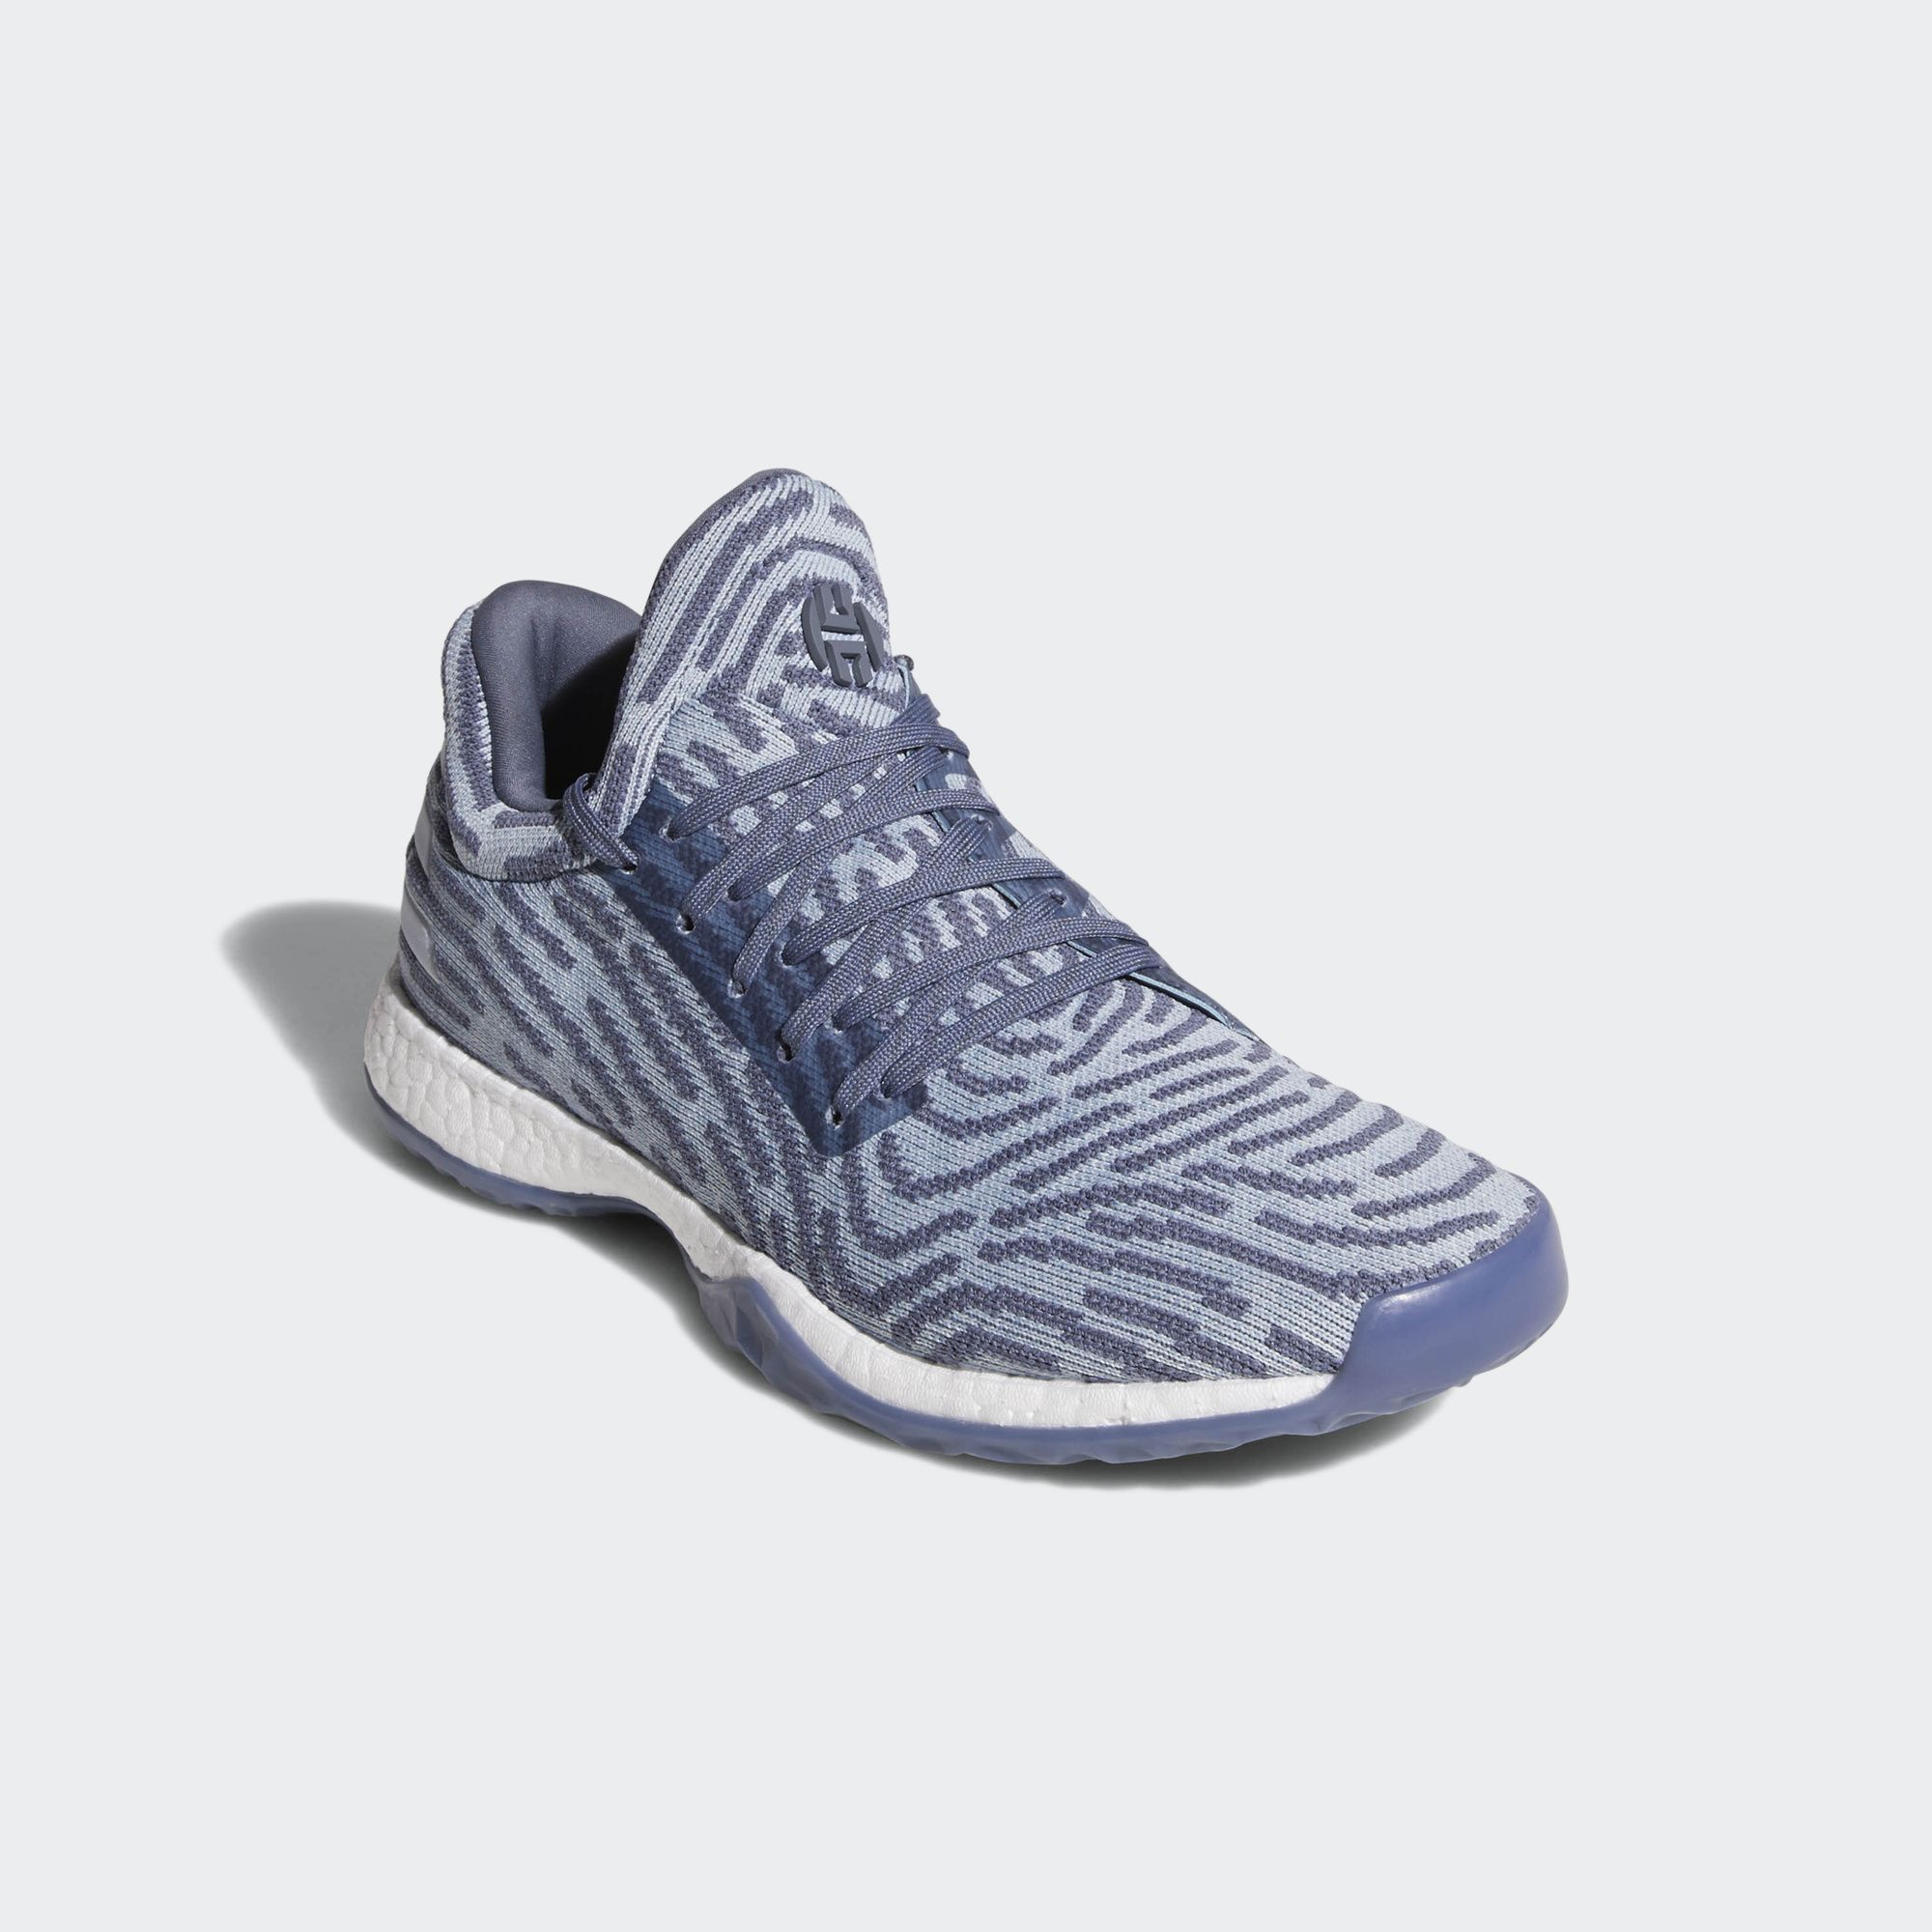 6e20e8a9fa6 adidas harden LS raw steel 2 - WearTesters